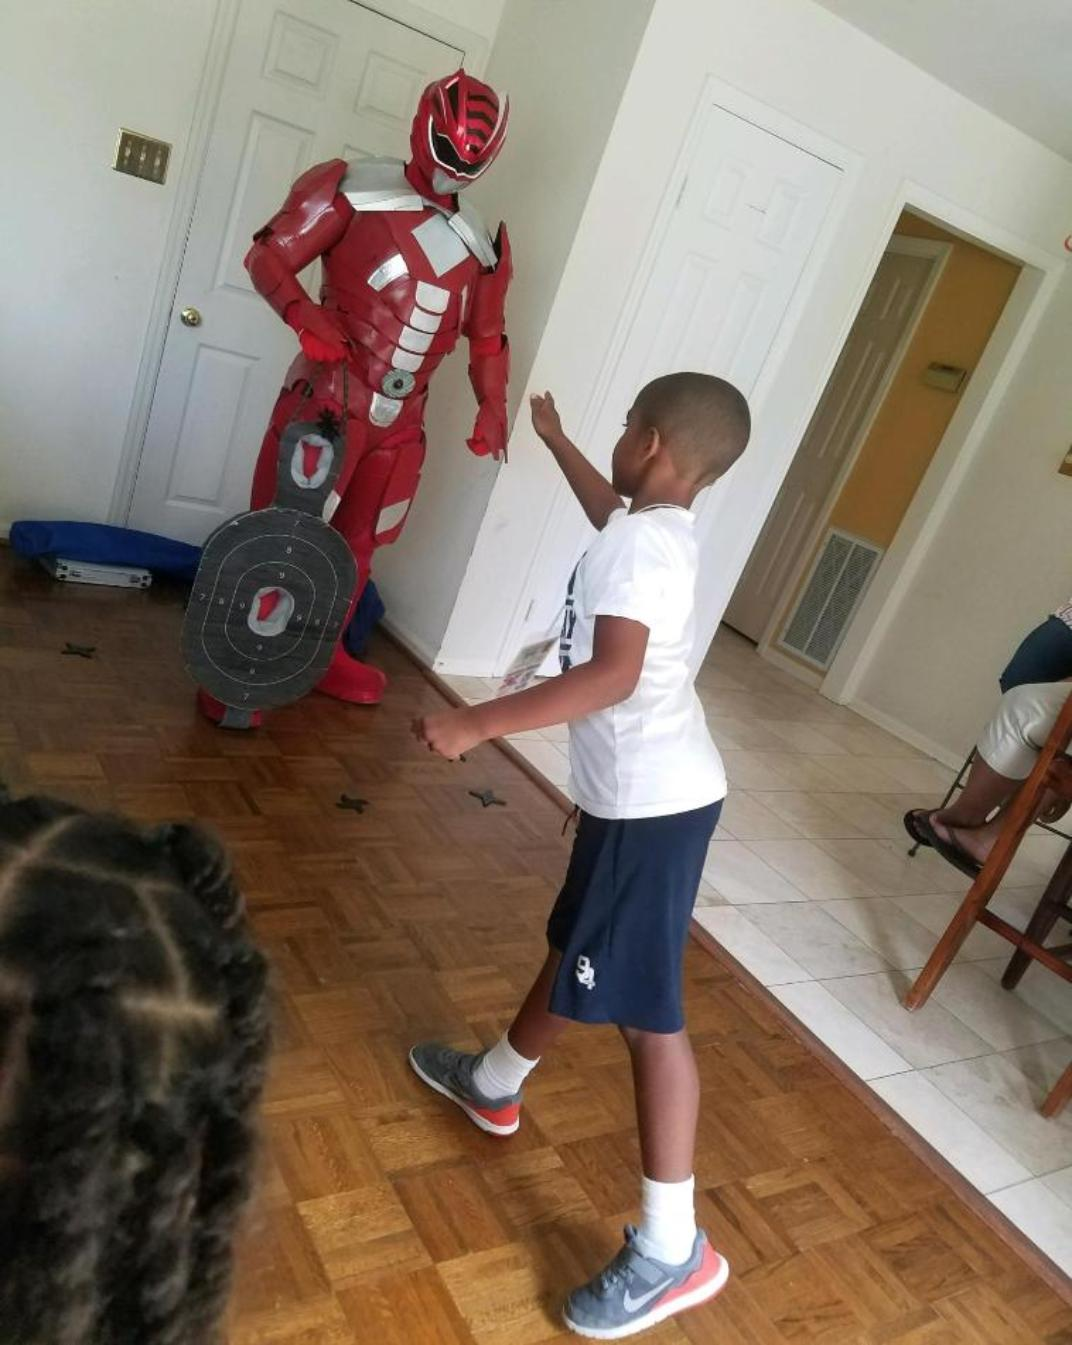 Superhero birthday party activities in Sugarland, Texas.